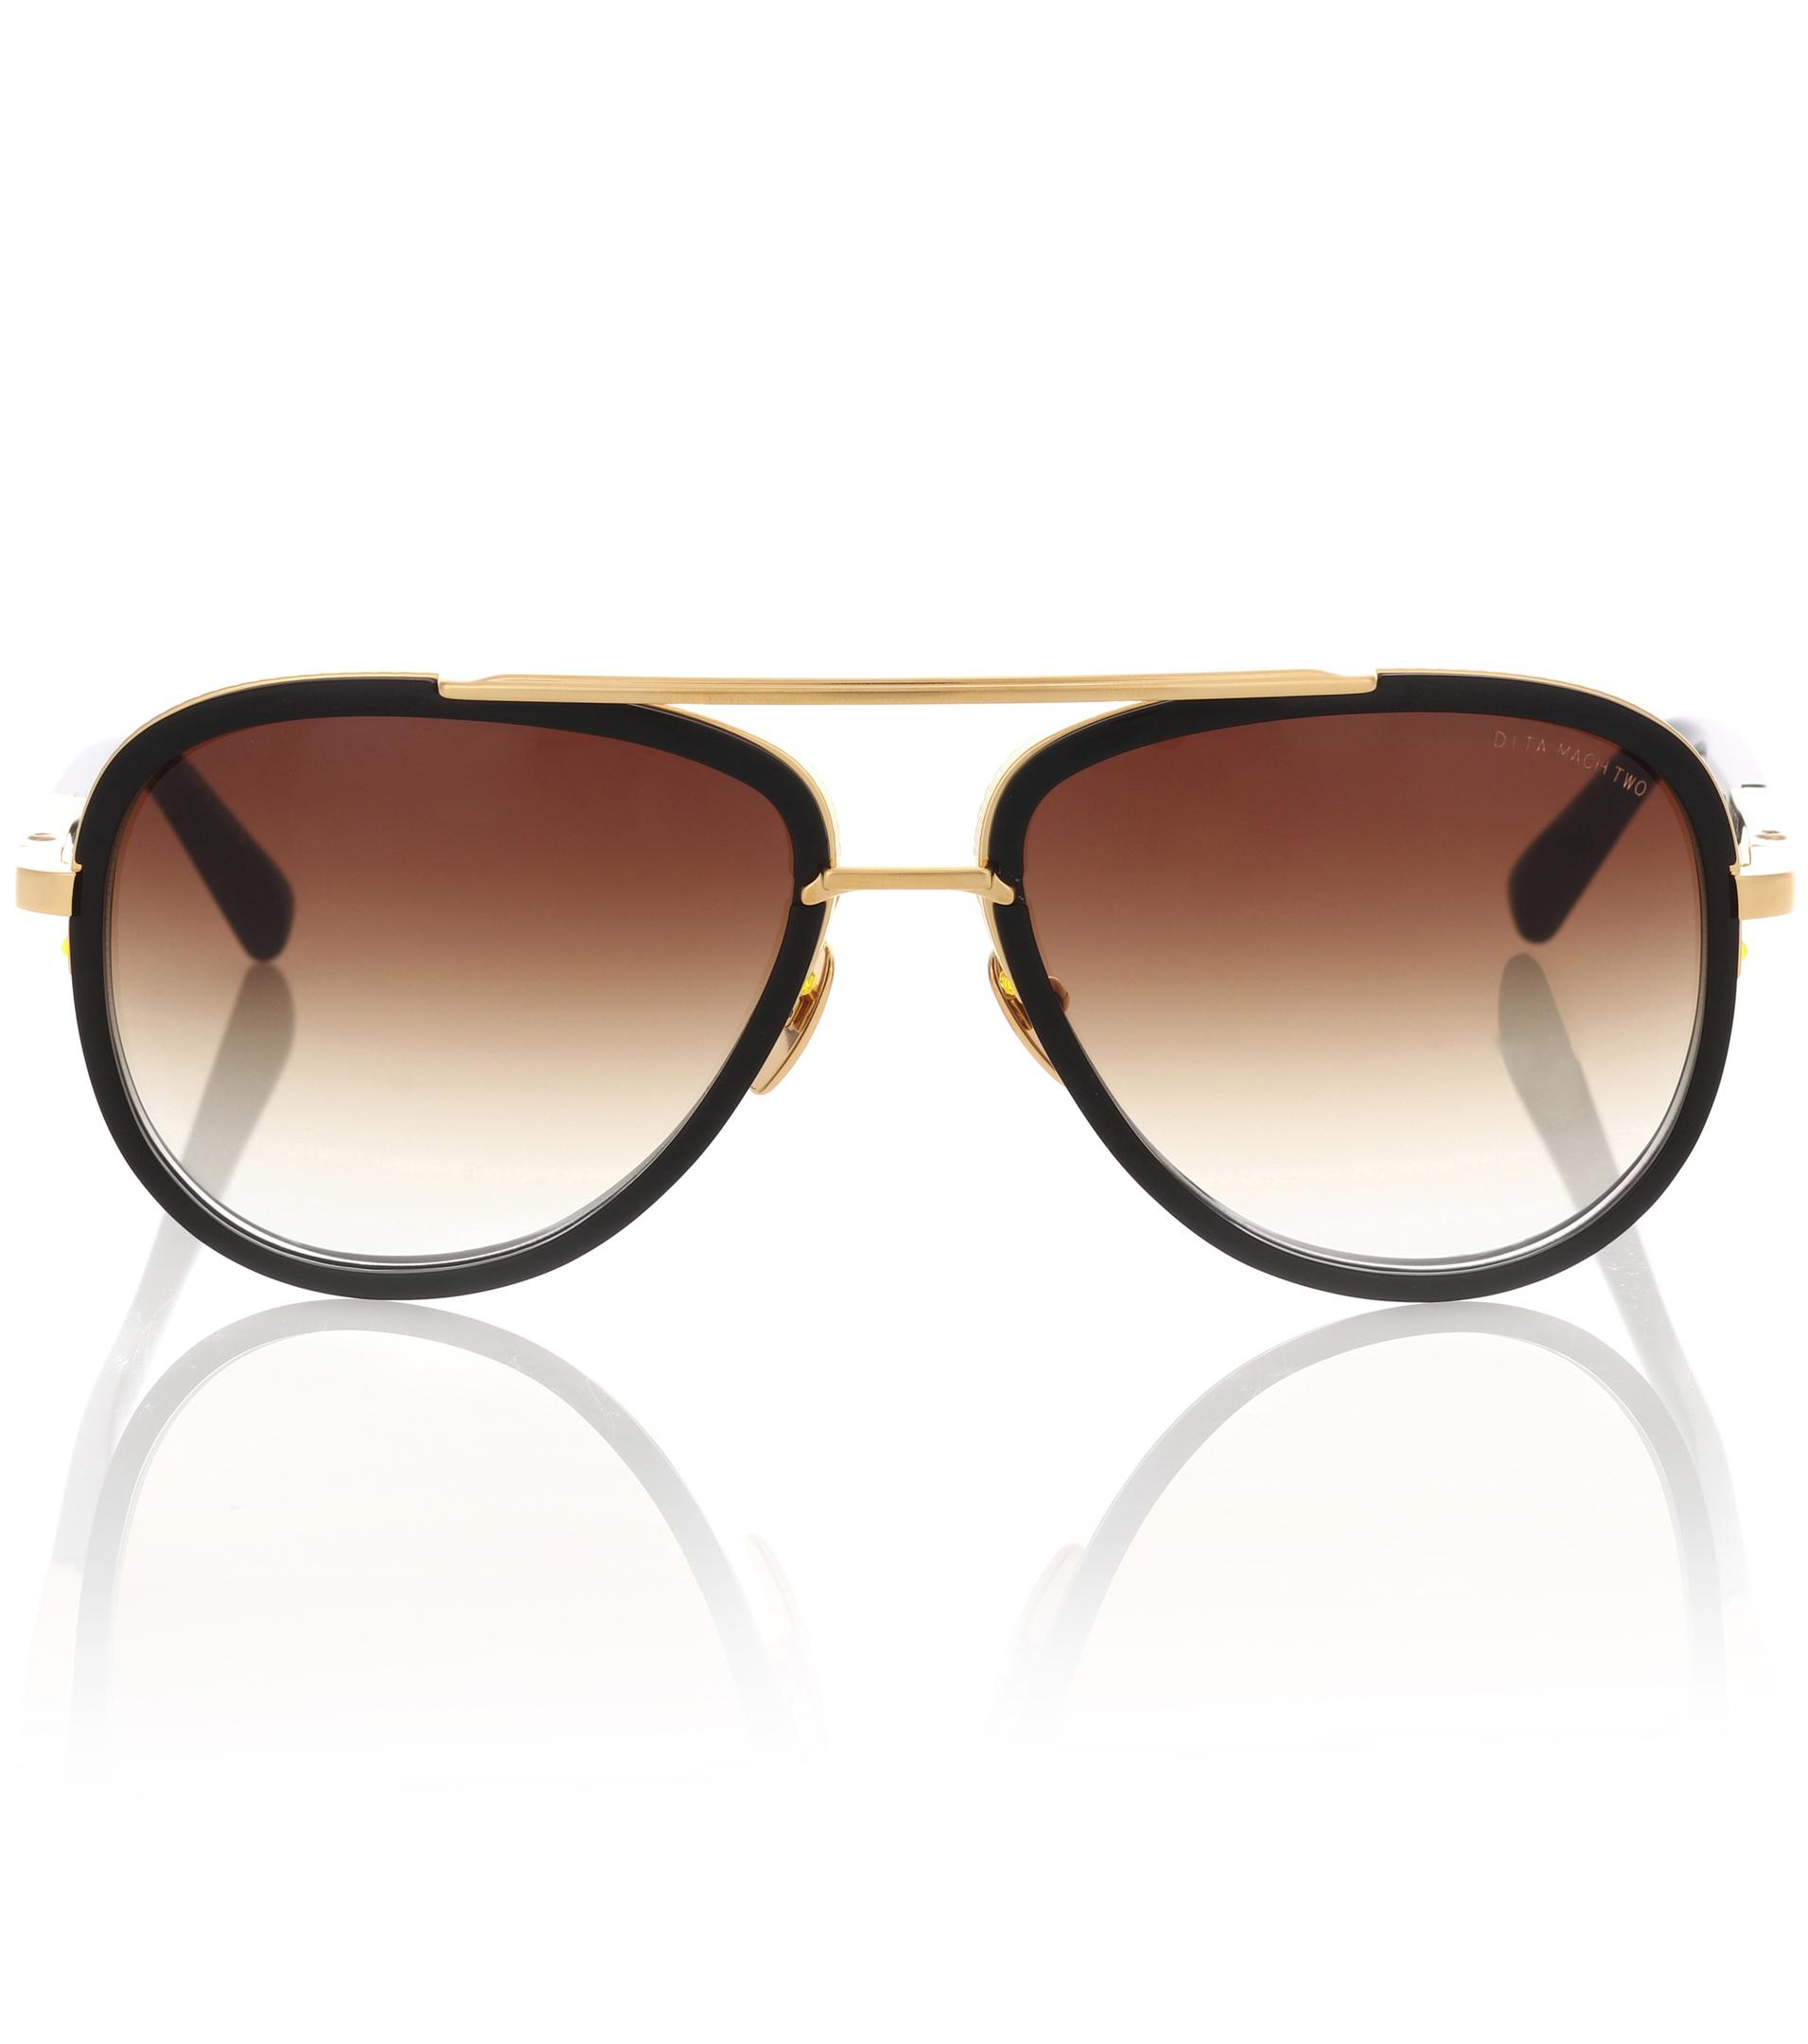 fb8515b4e98 Lyst - Dita Eyewear Mach Two 18kt Gold-plated Acetate Sunglasses in ...